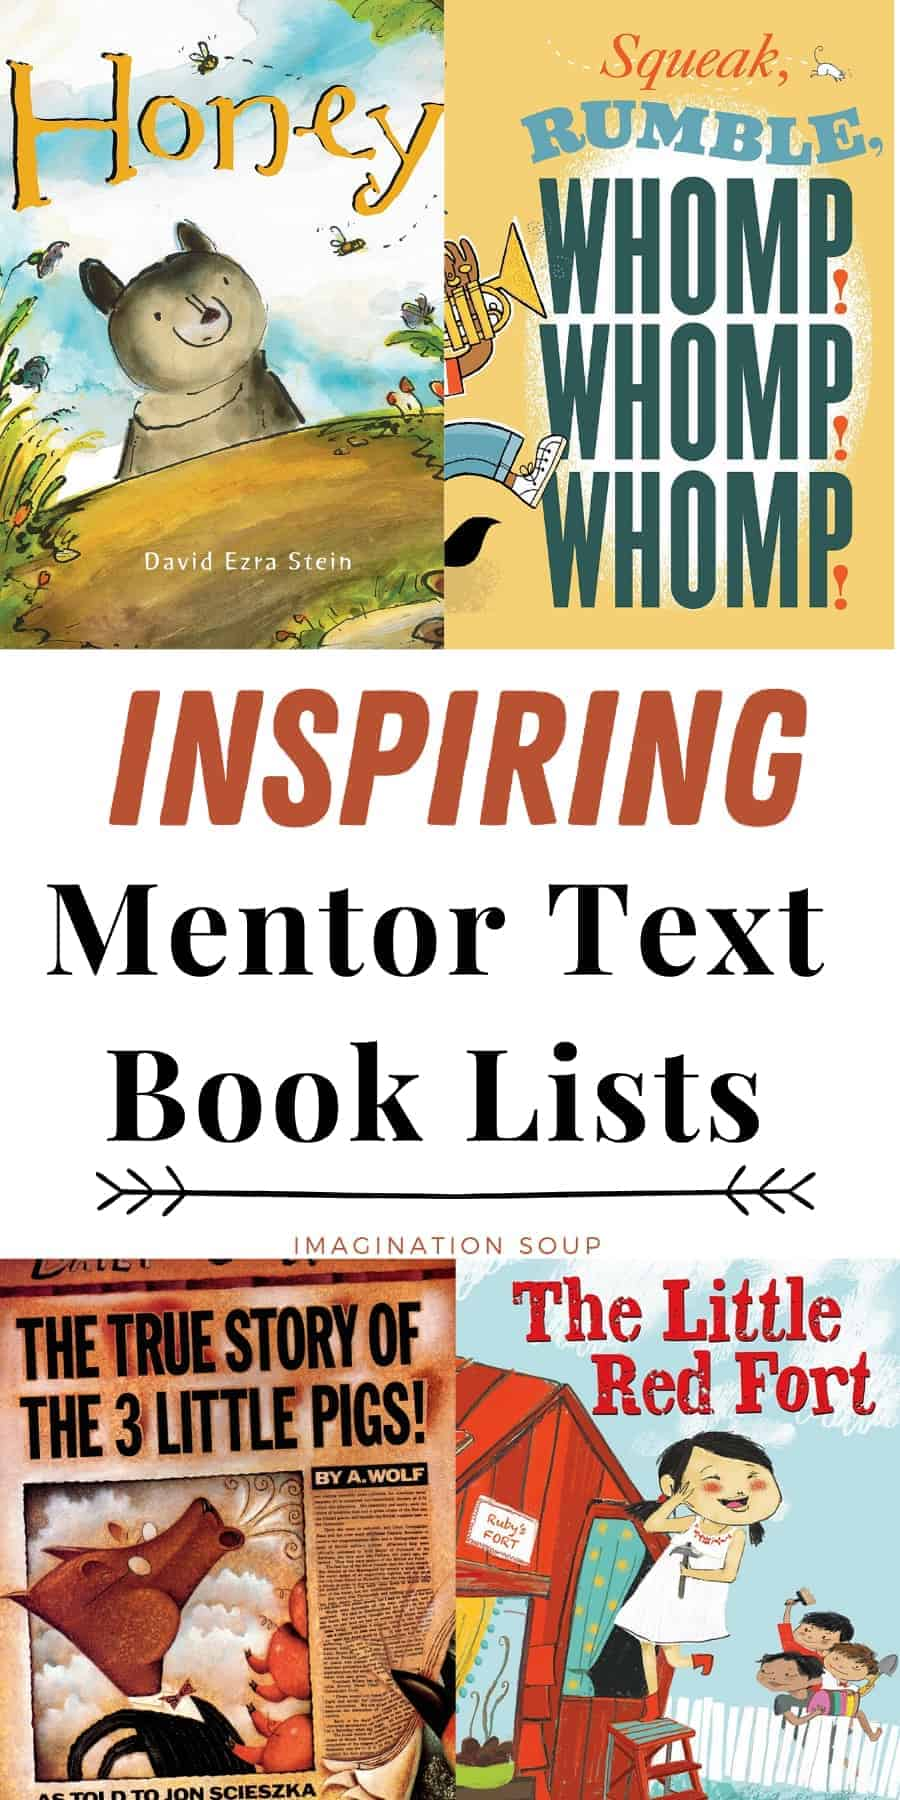 mentor text book lists for elementary classroom teachers and homeschoolers